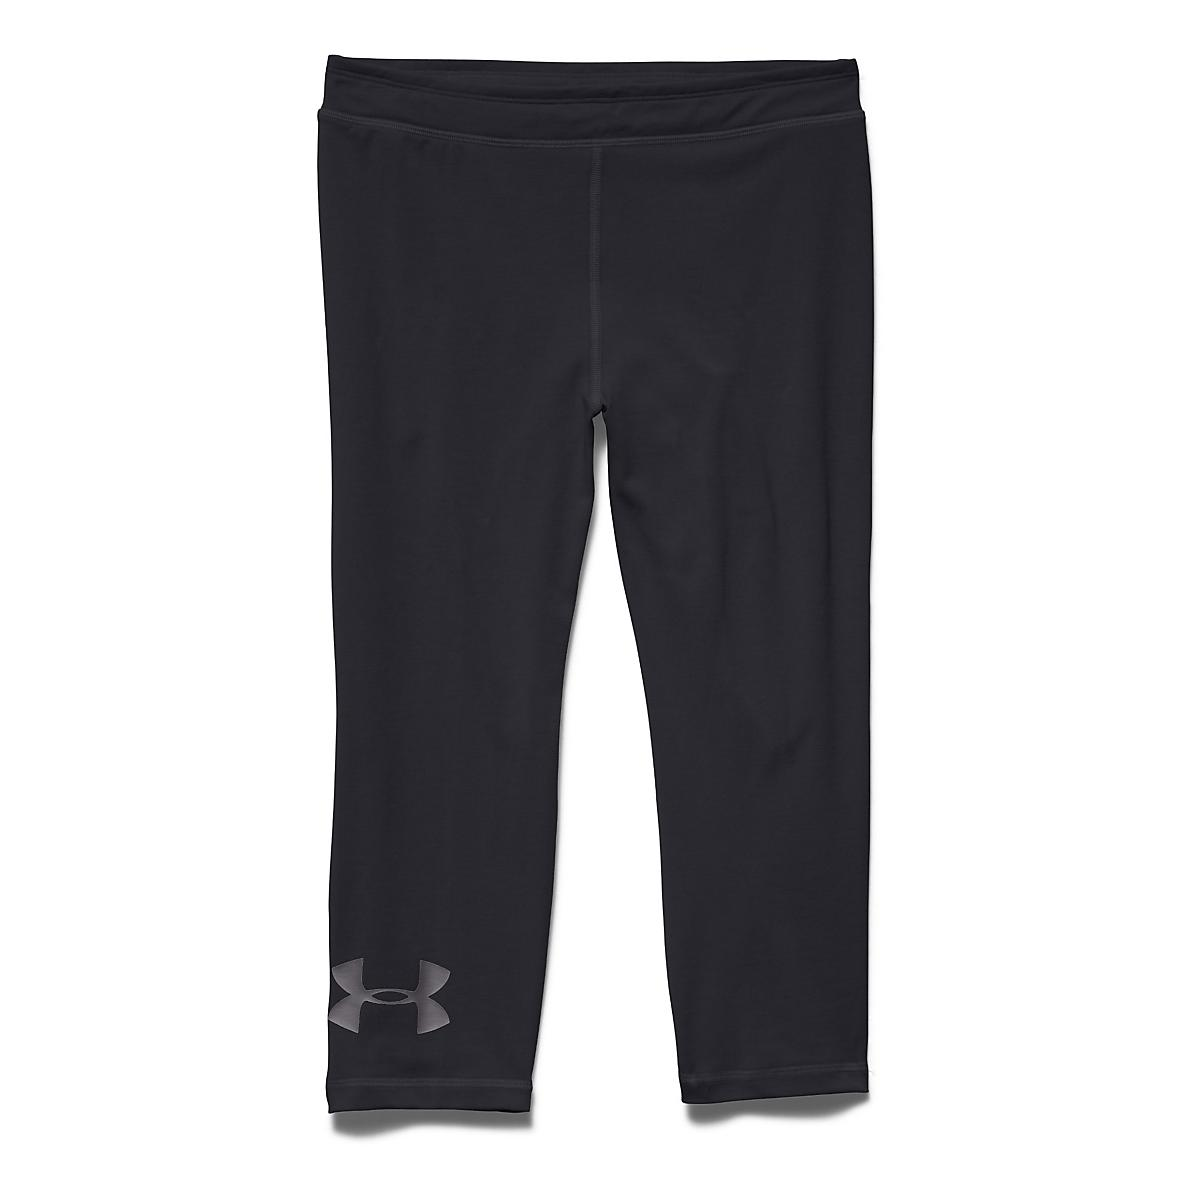 Women's Under Armour�Rival Capri